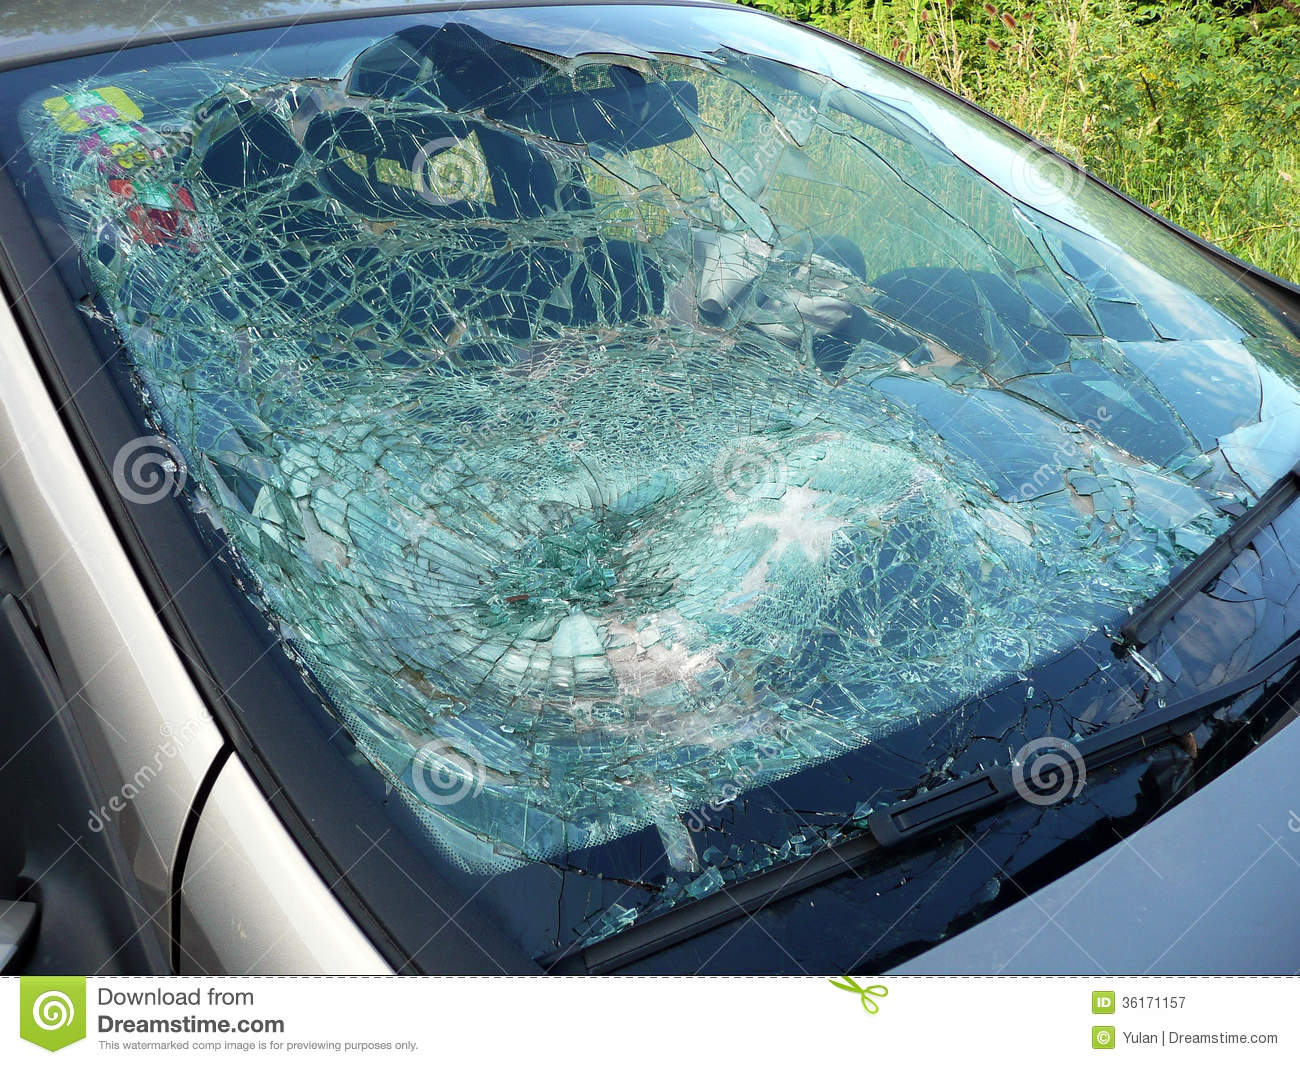 Opening an Auto Glass Replacement & Repair Business